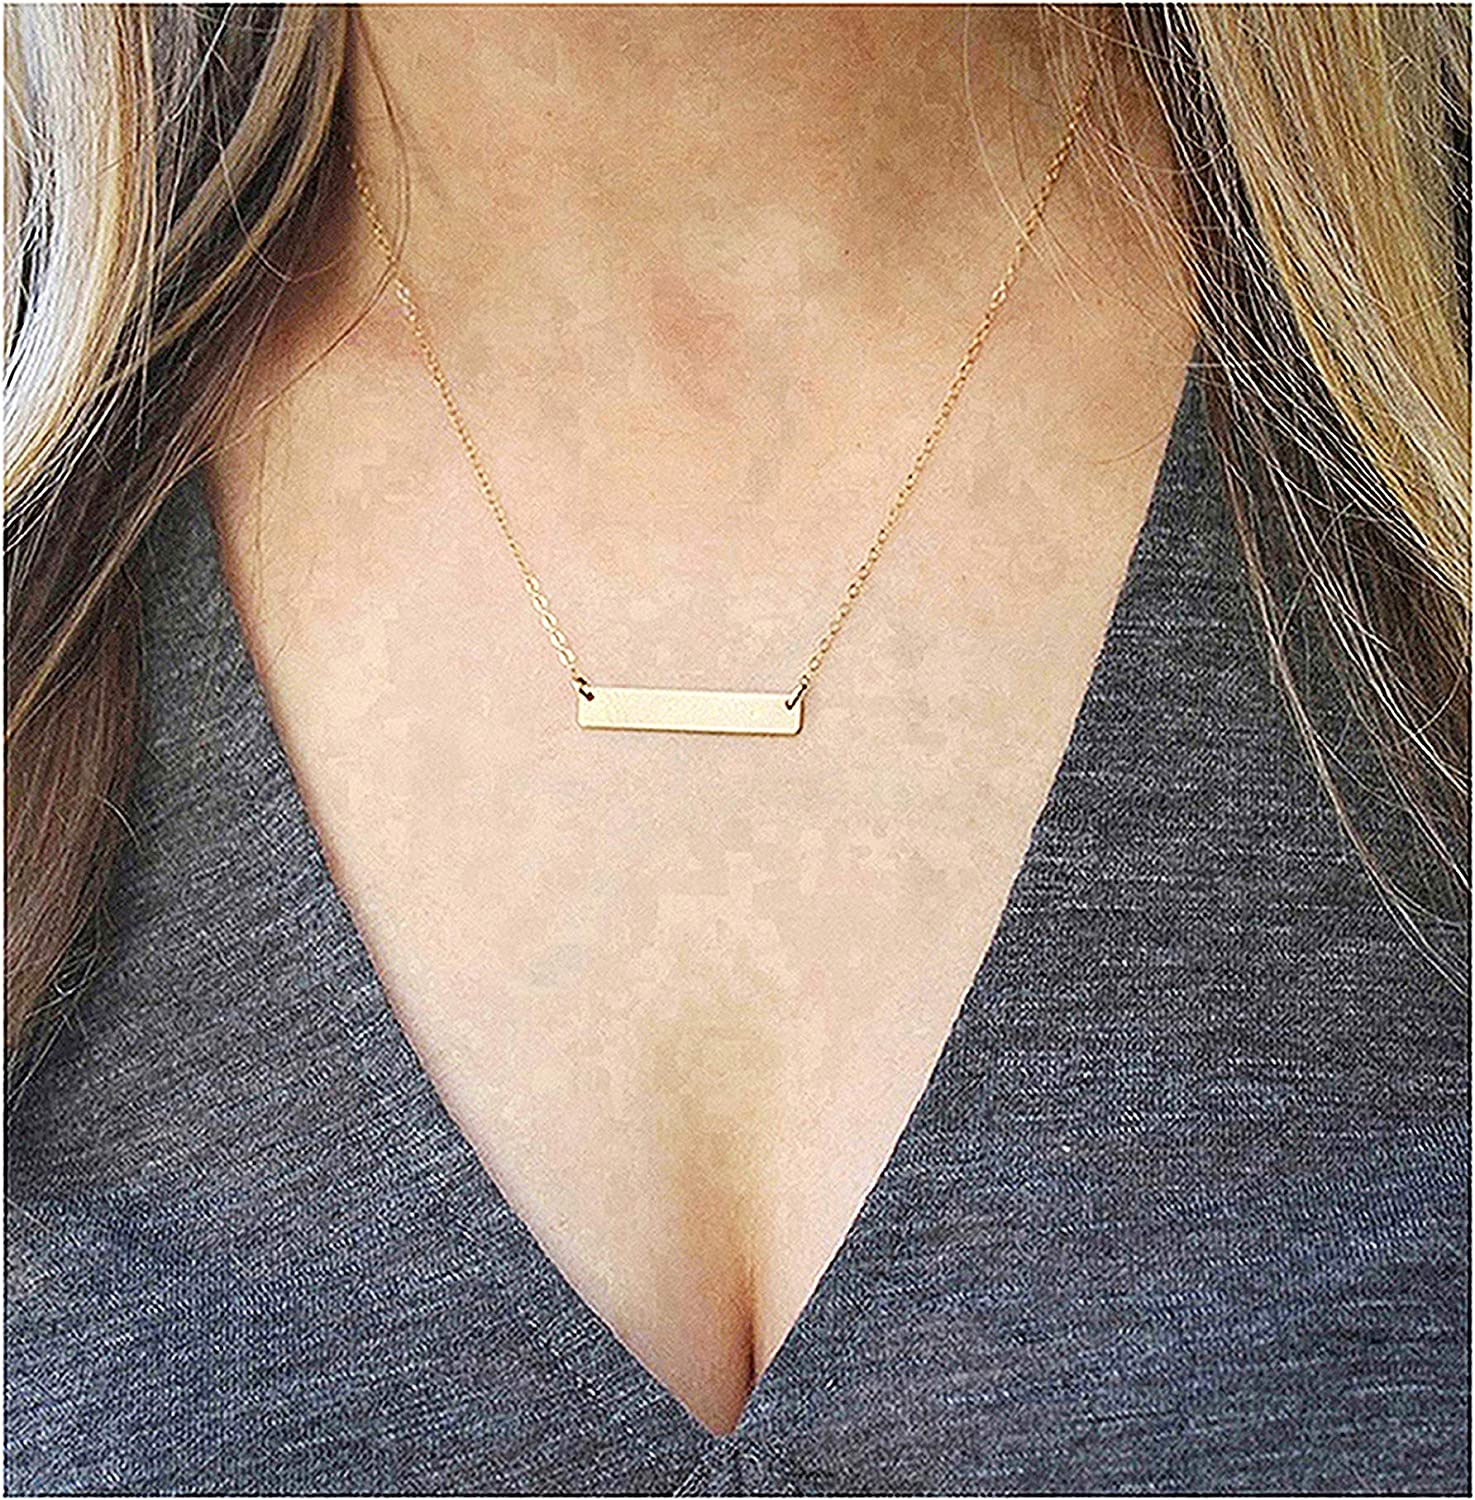 Gold Dainty Vertical Bar Necklace Silver Rose Gold Stainless Steel